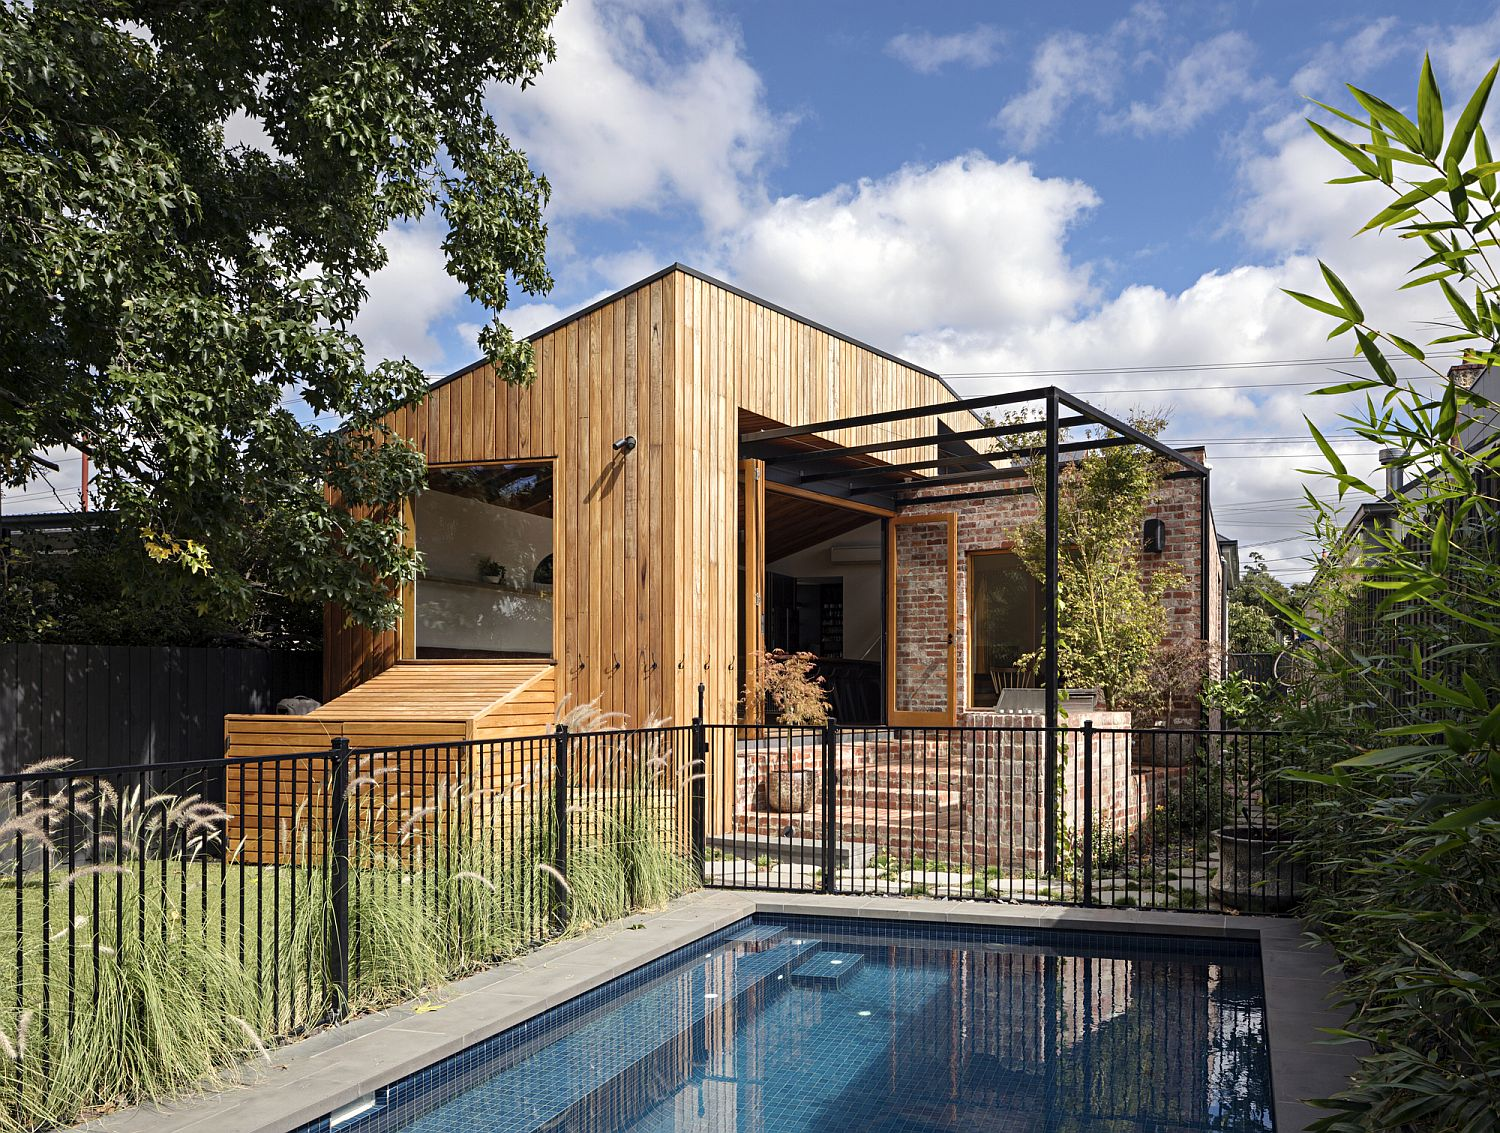 Revamped timber and brick exterior of the home